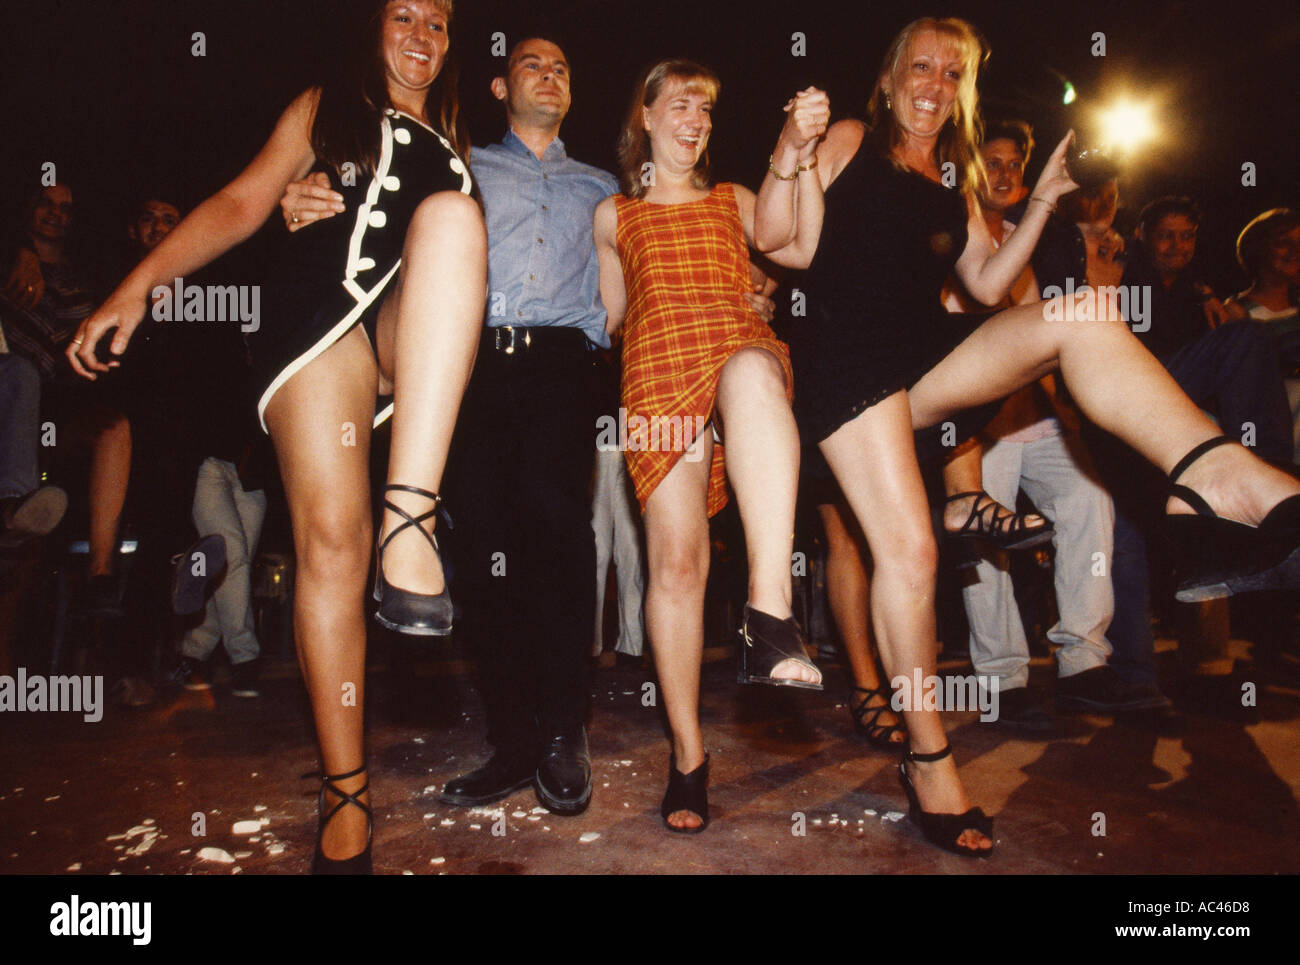 CLUB 18 30 DRINKING BOOZING PARTYING - Stock Image